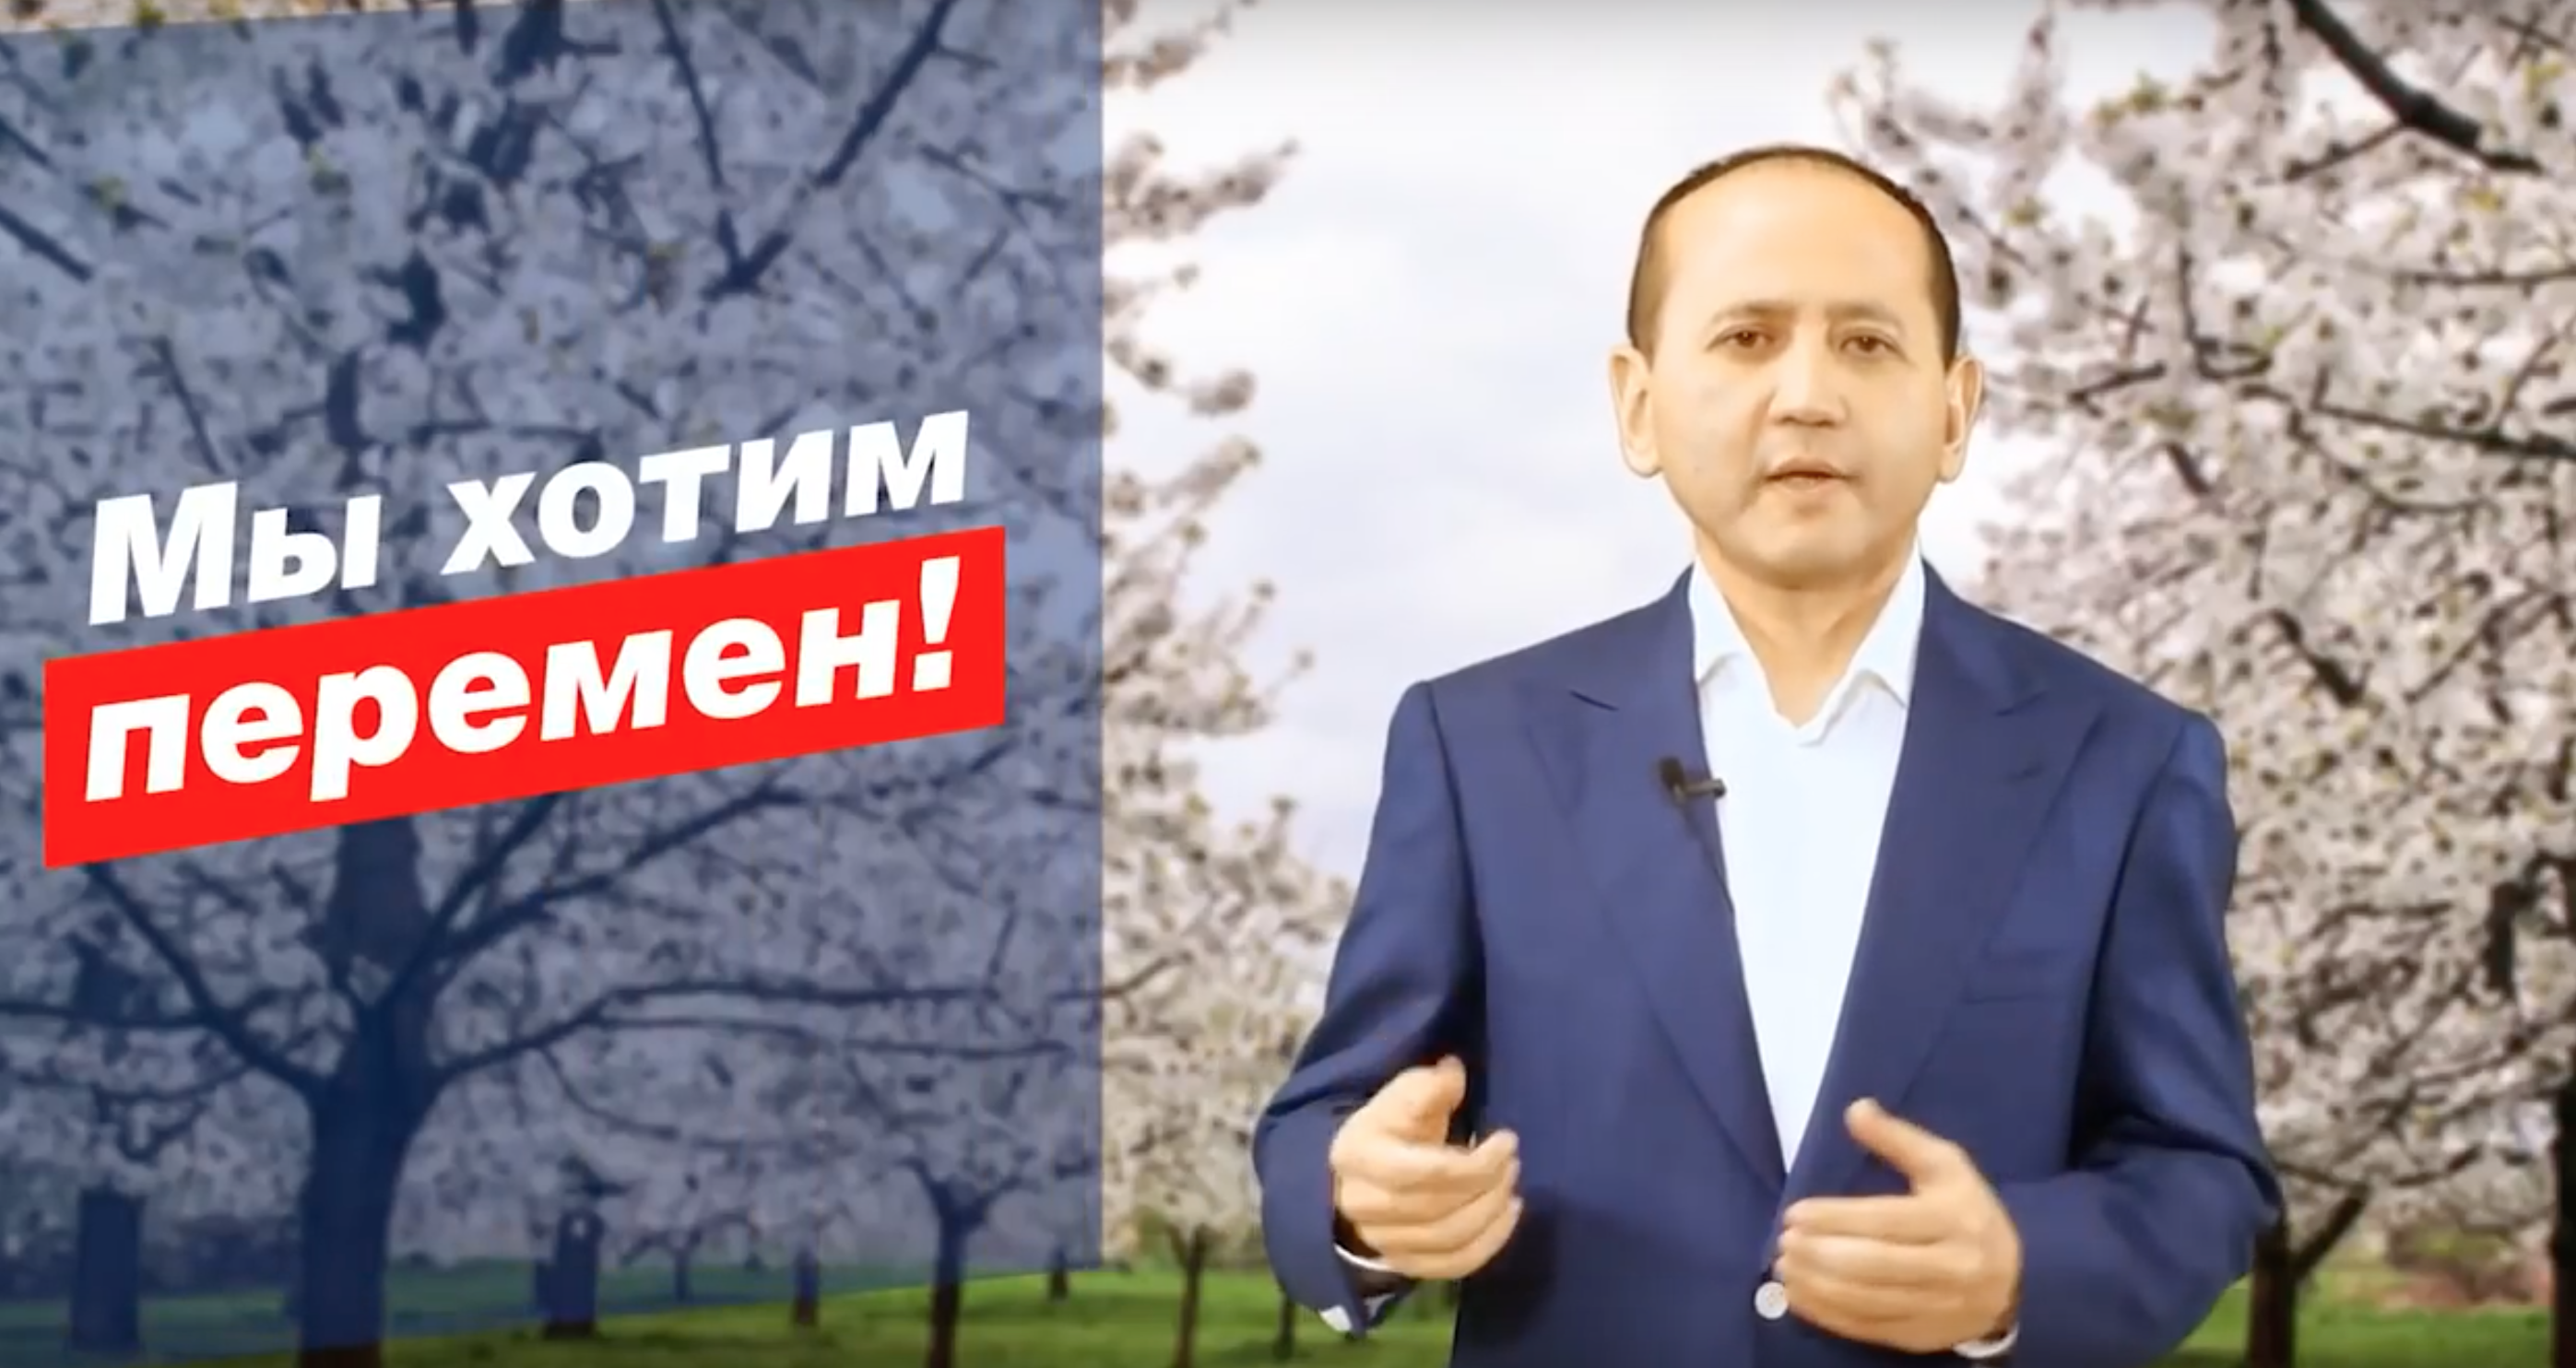 Opposition politician Mukhtar Ablyazov urging supporters on his YouTube channel to take blue balloons to Nowruz festivities.